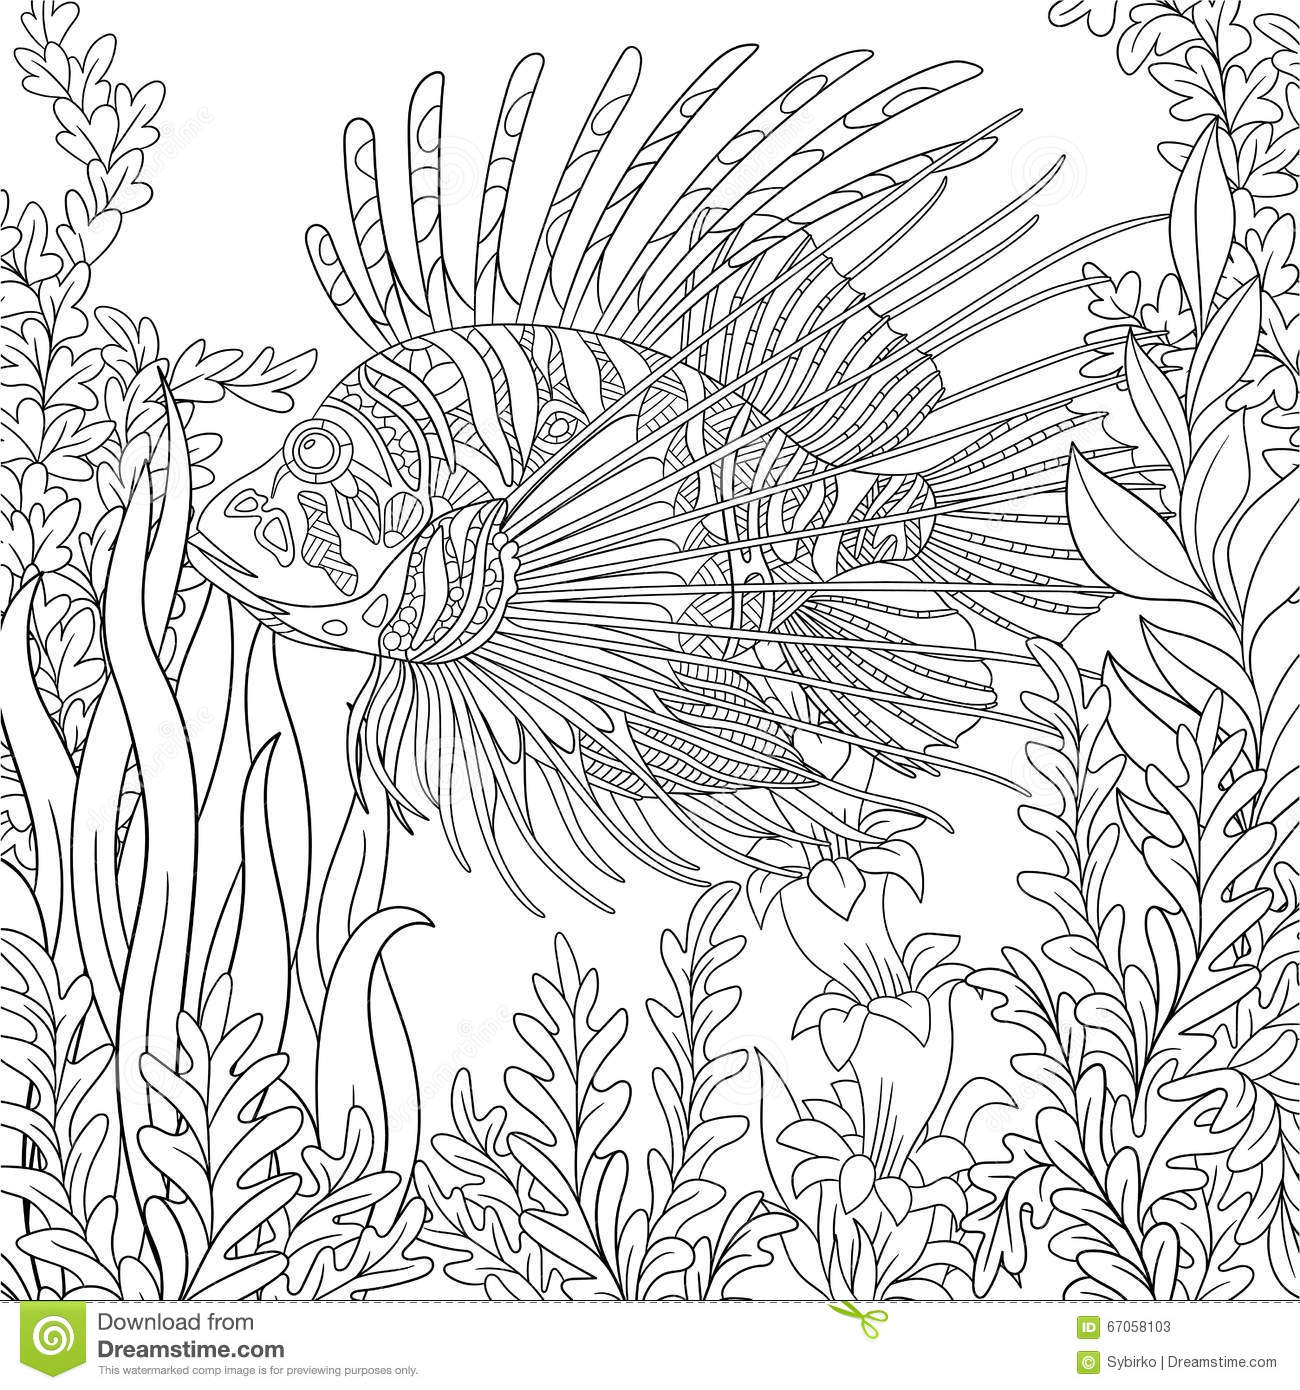 Dangerous Animal Coloring Pages